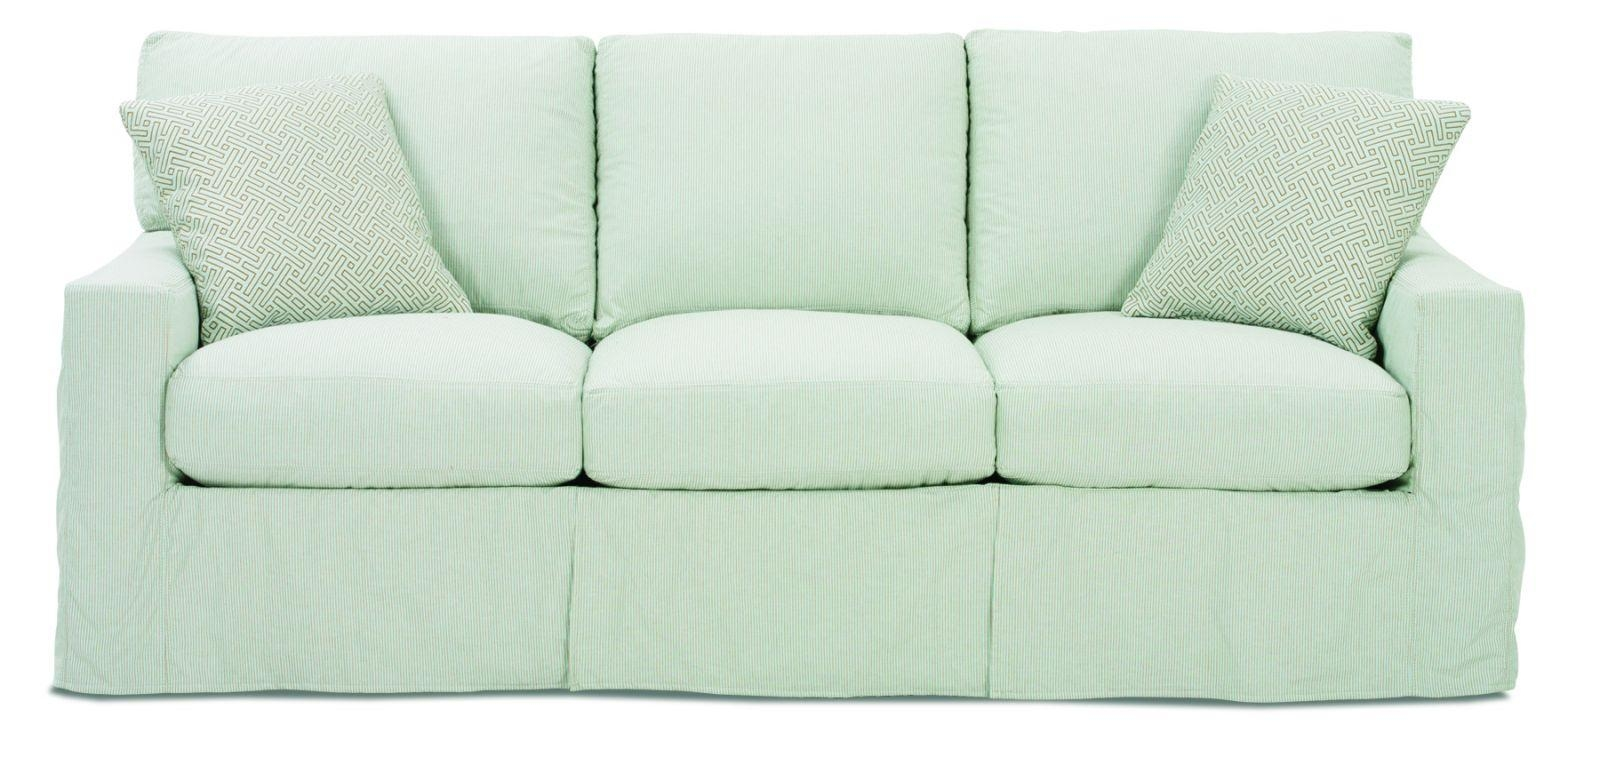 Slipcover Patterns For Sofas – Slipcover Sofas For Instant Fresh Throughout Slipcover Style Sofas (View 12 of 20)